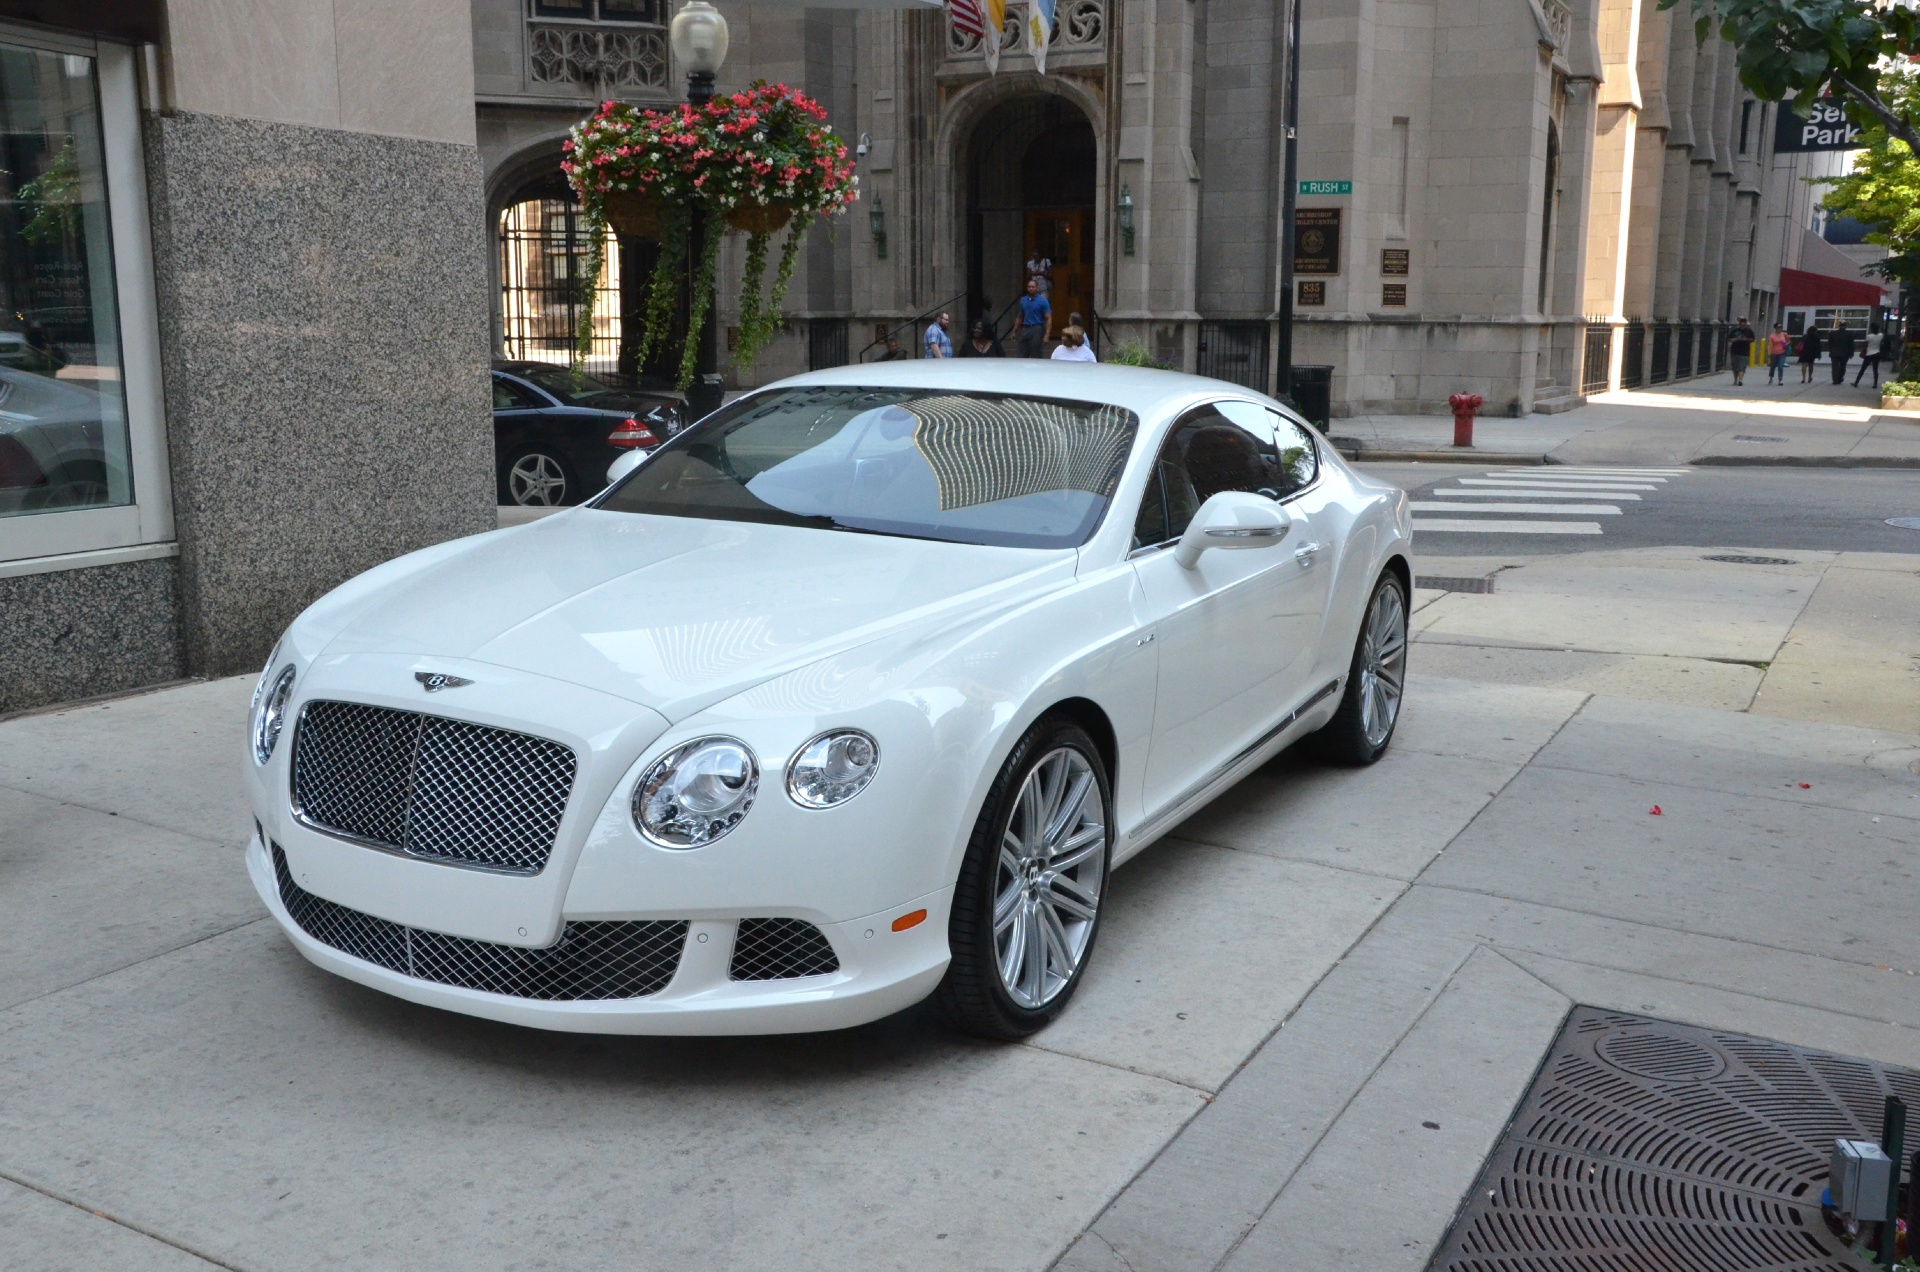 Bentley 2014 hit the market with the model of Bentley Continental GT V8 S #1